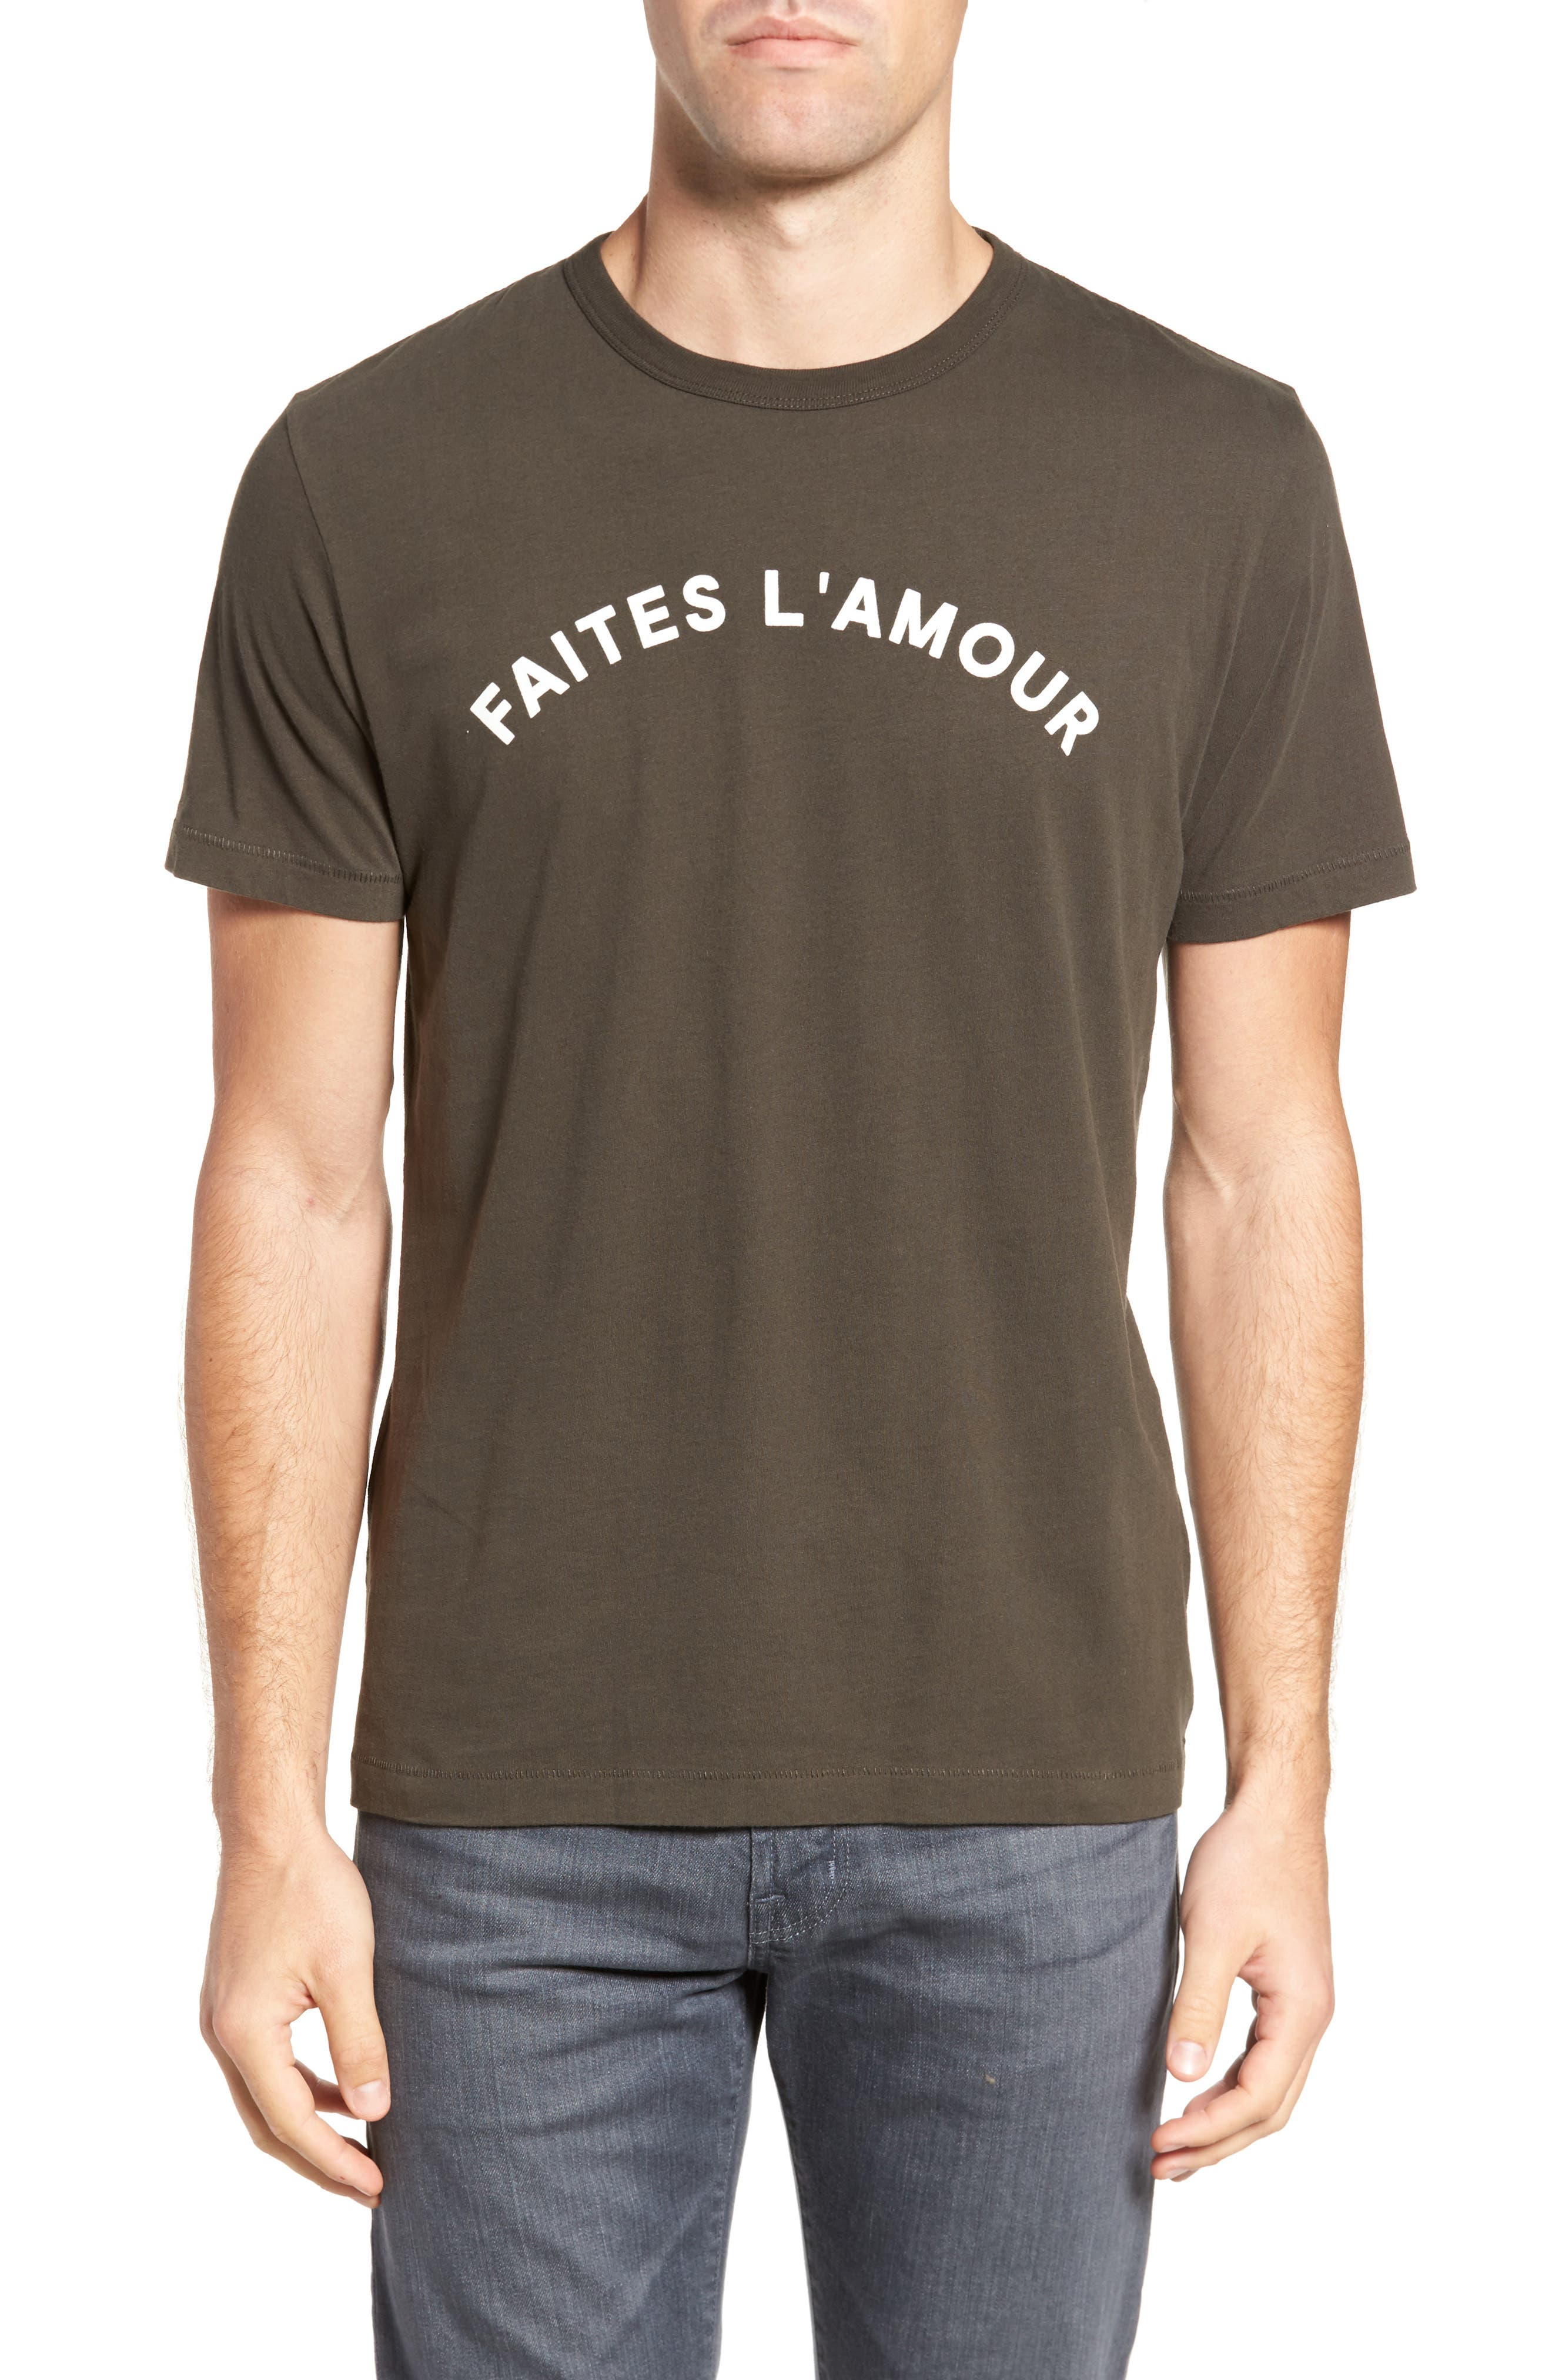 Main Image - French Connection Faites L'Amour Regular Fit T-Shirt